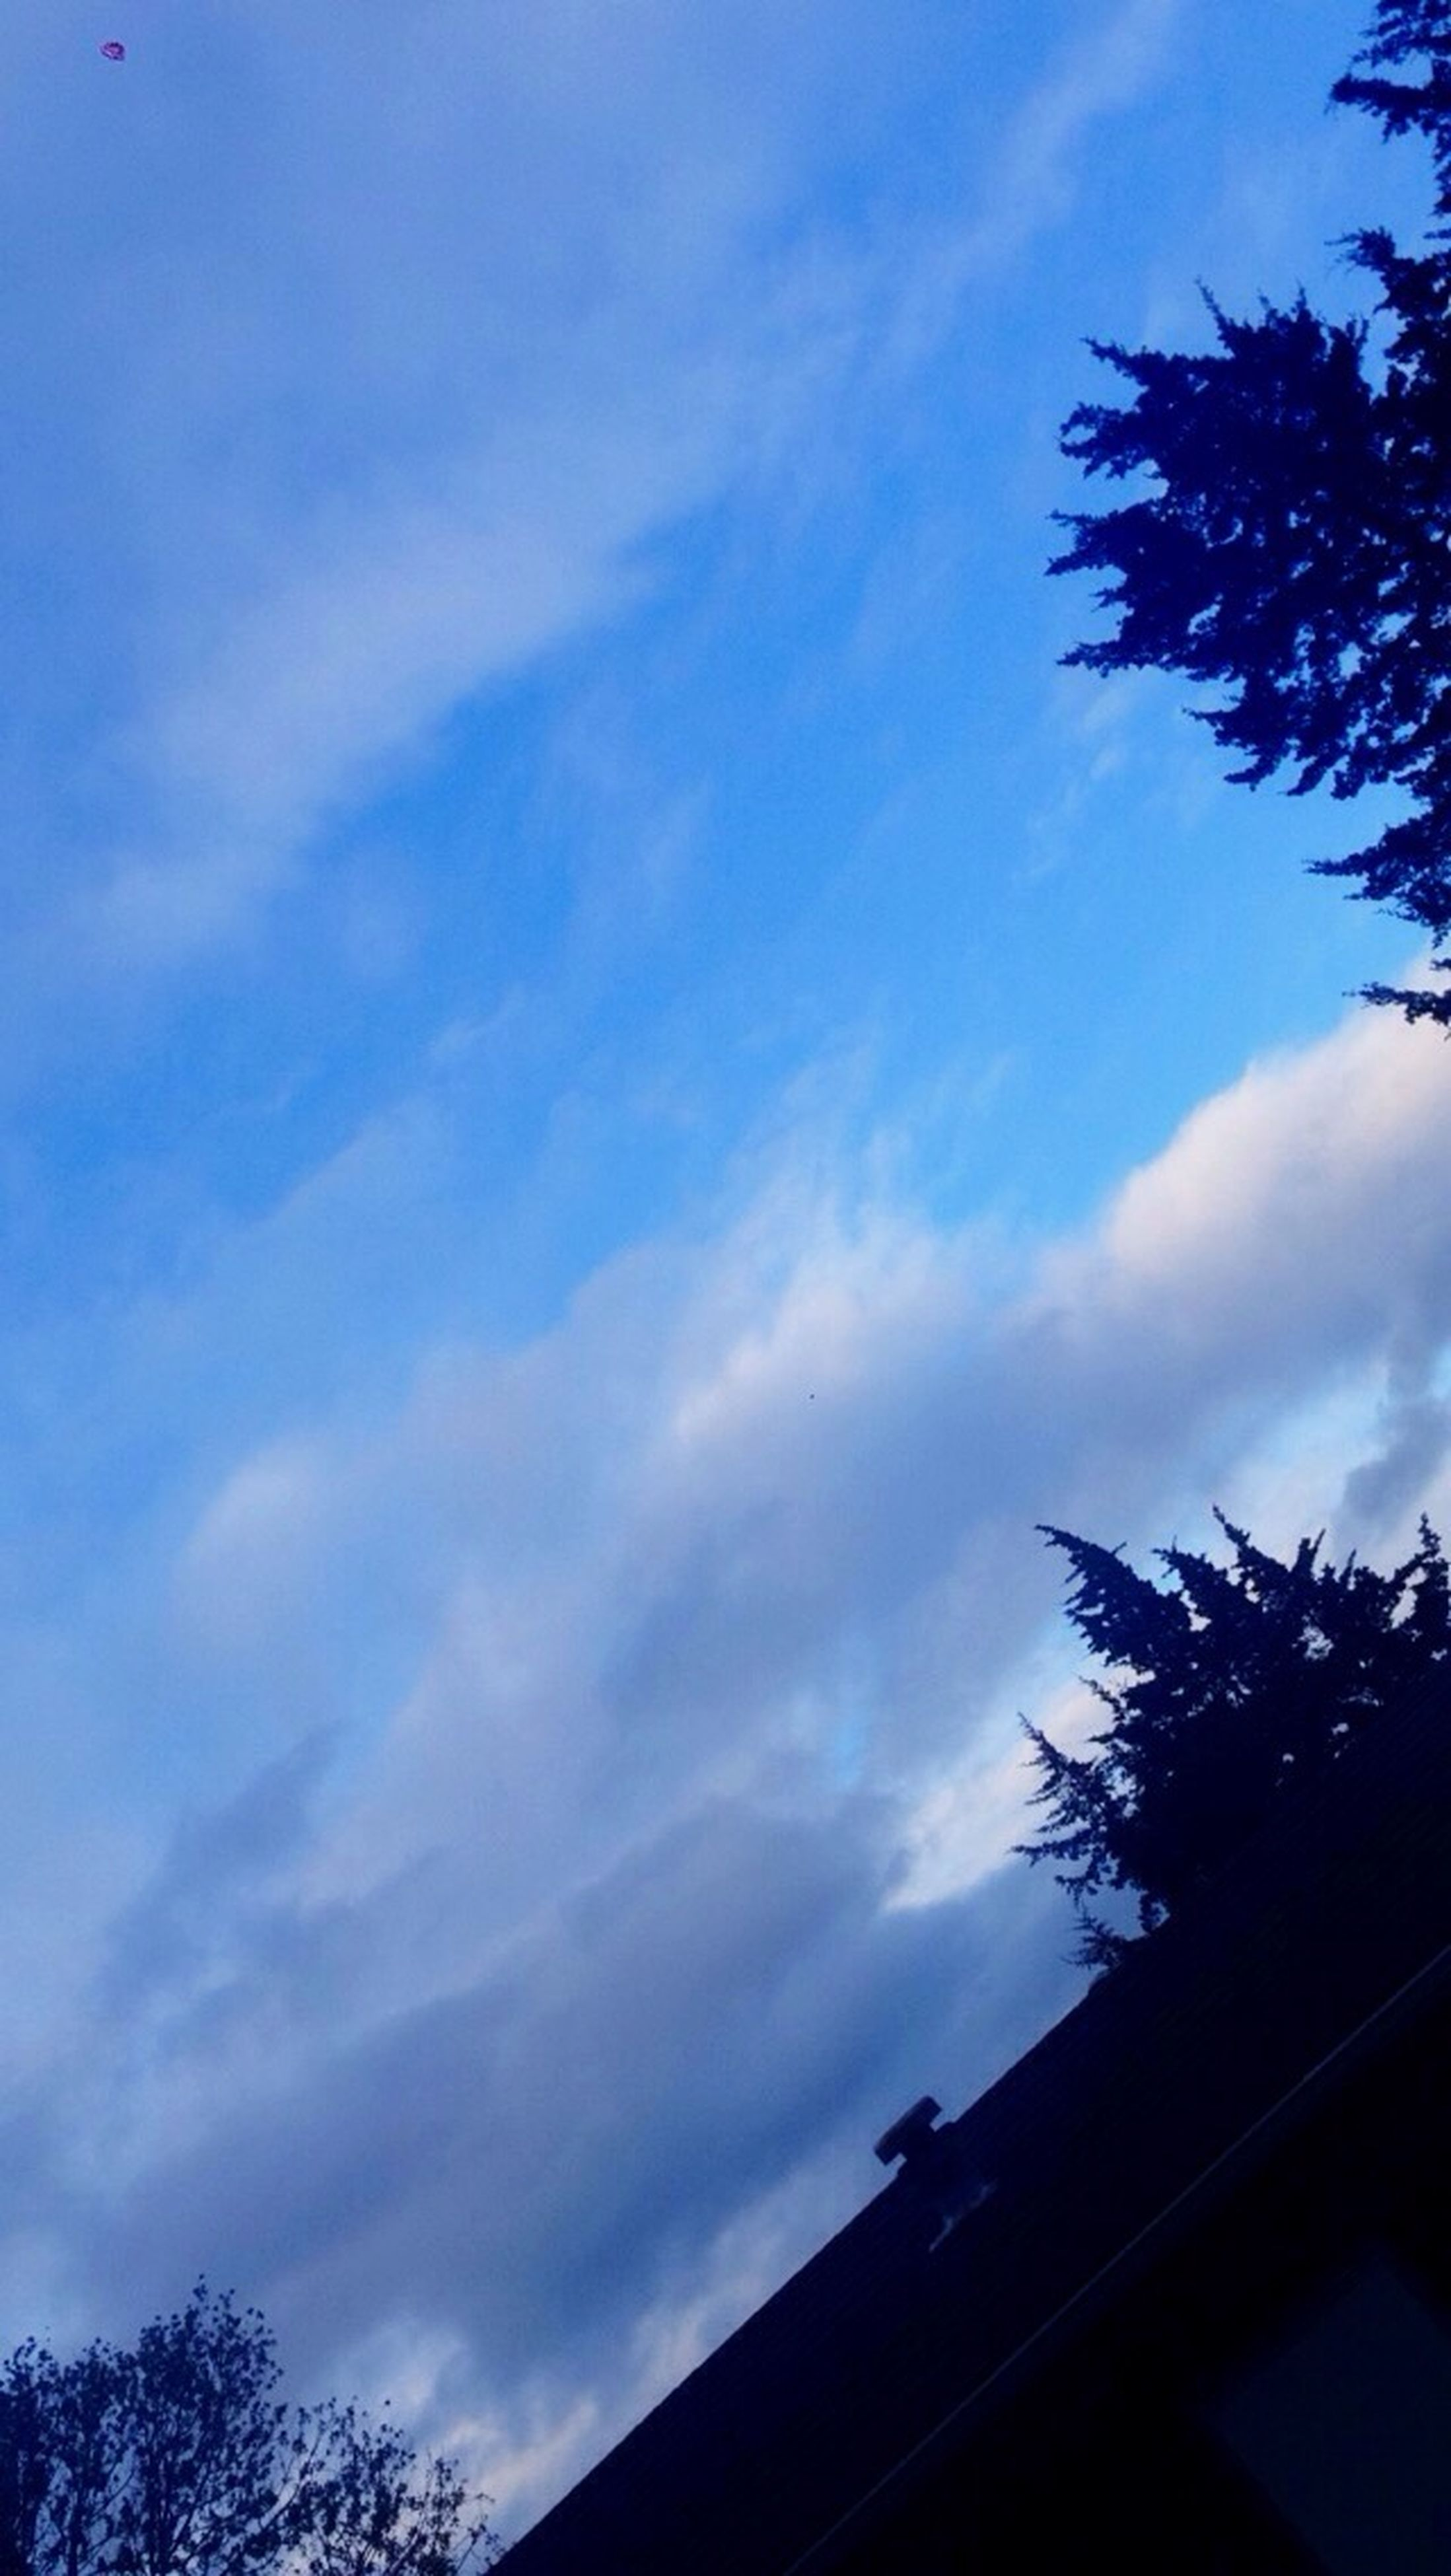 low angle view, sky, tree, silhouette, cloud - sky, built structure, blue, building exterior, architecture, high section, cloud, nature, cloudy, branch, outdoors, beauty in nature, growth, house, no people, day